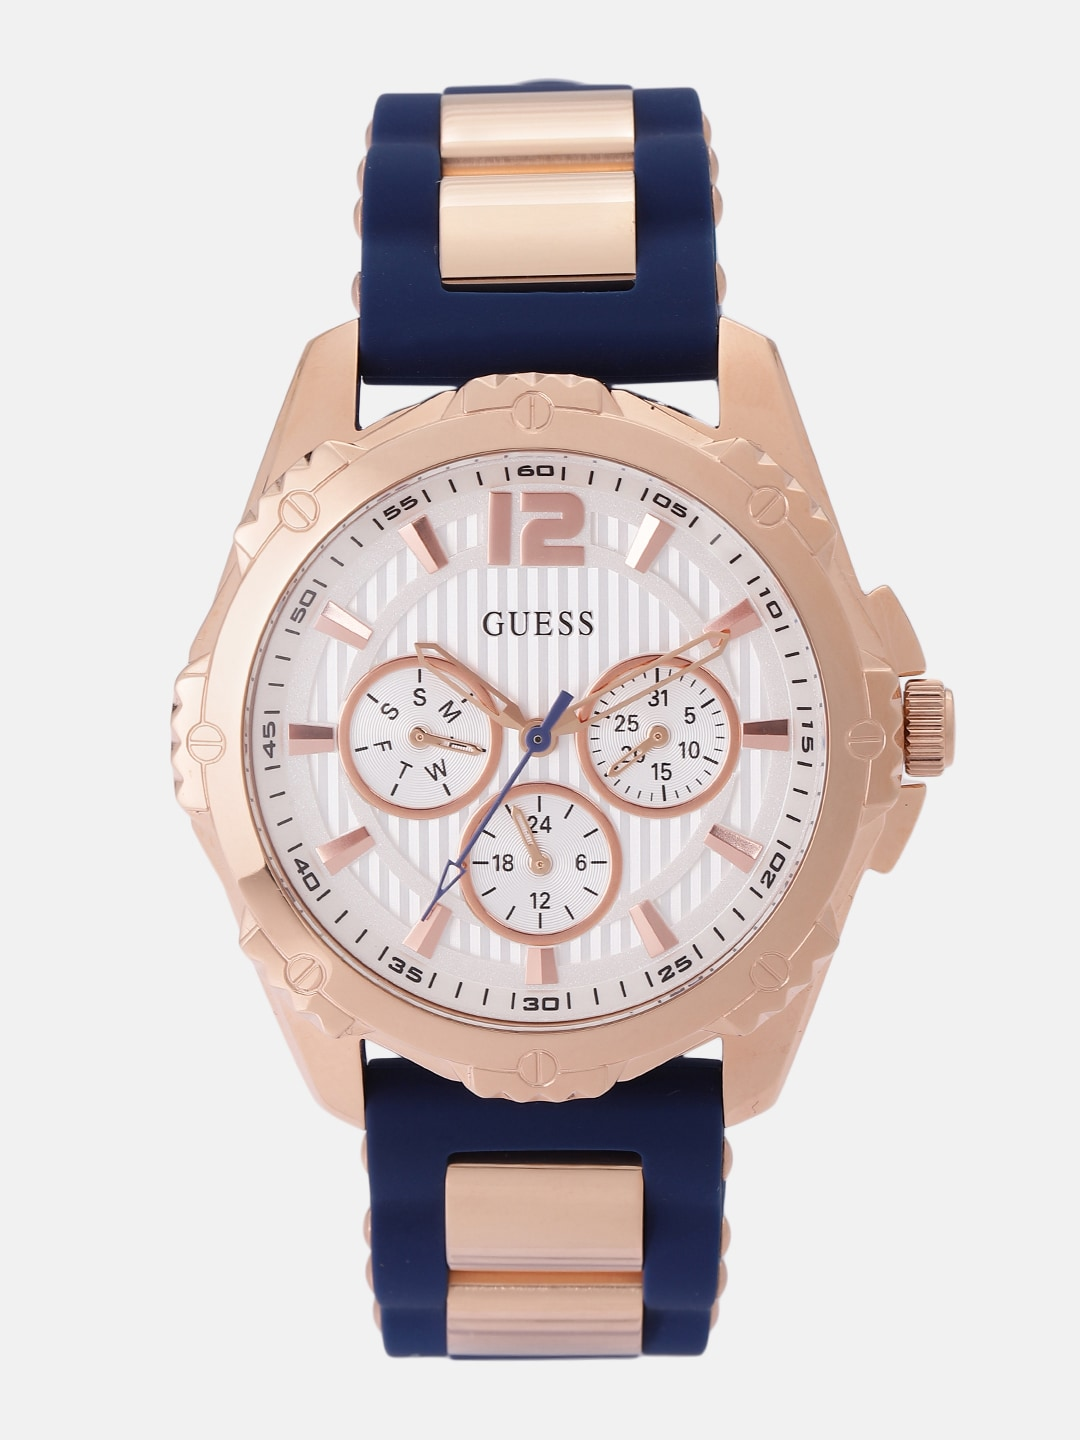 6225d36eefbbe Women Guess Watches - Buy Guess Watch for Women Online